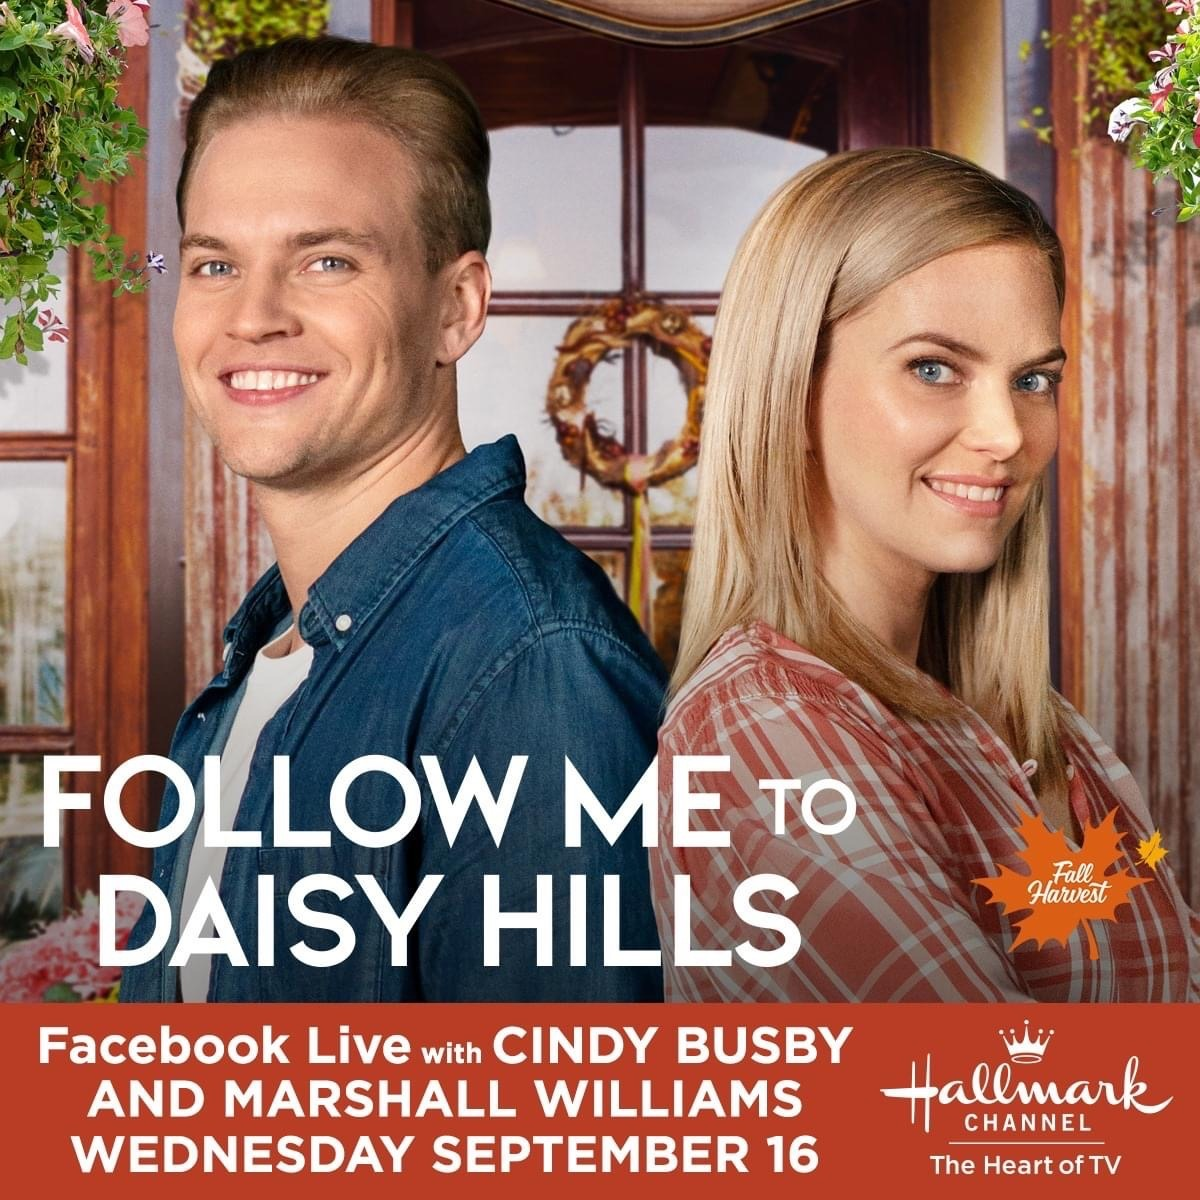 Follow Me to Daisy Hills (2020) Subtitle (English Srt) Download